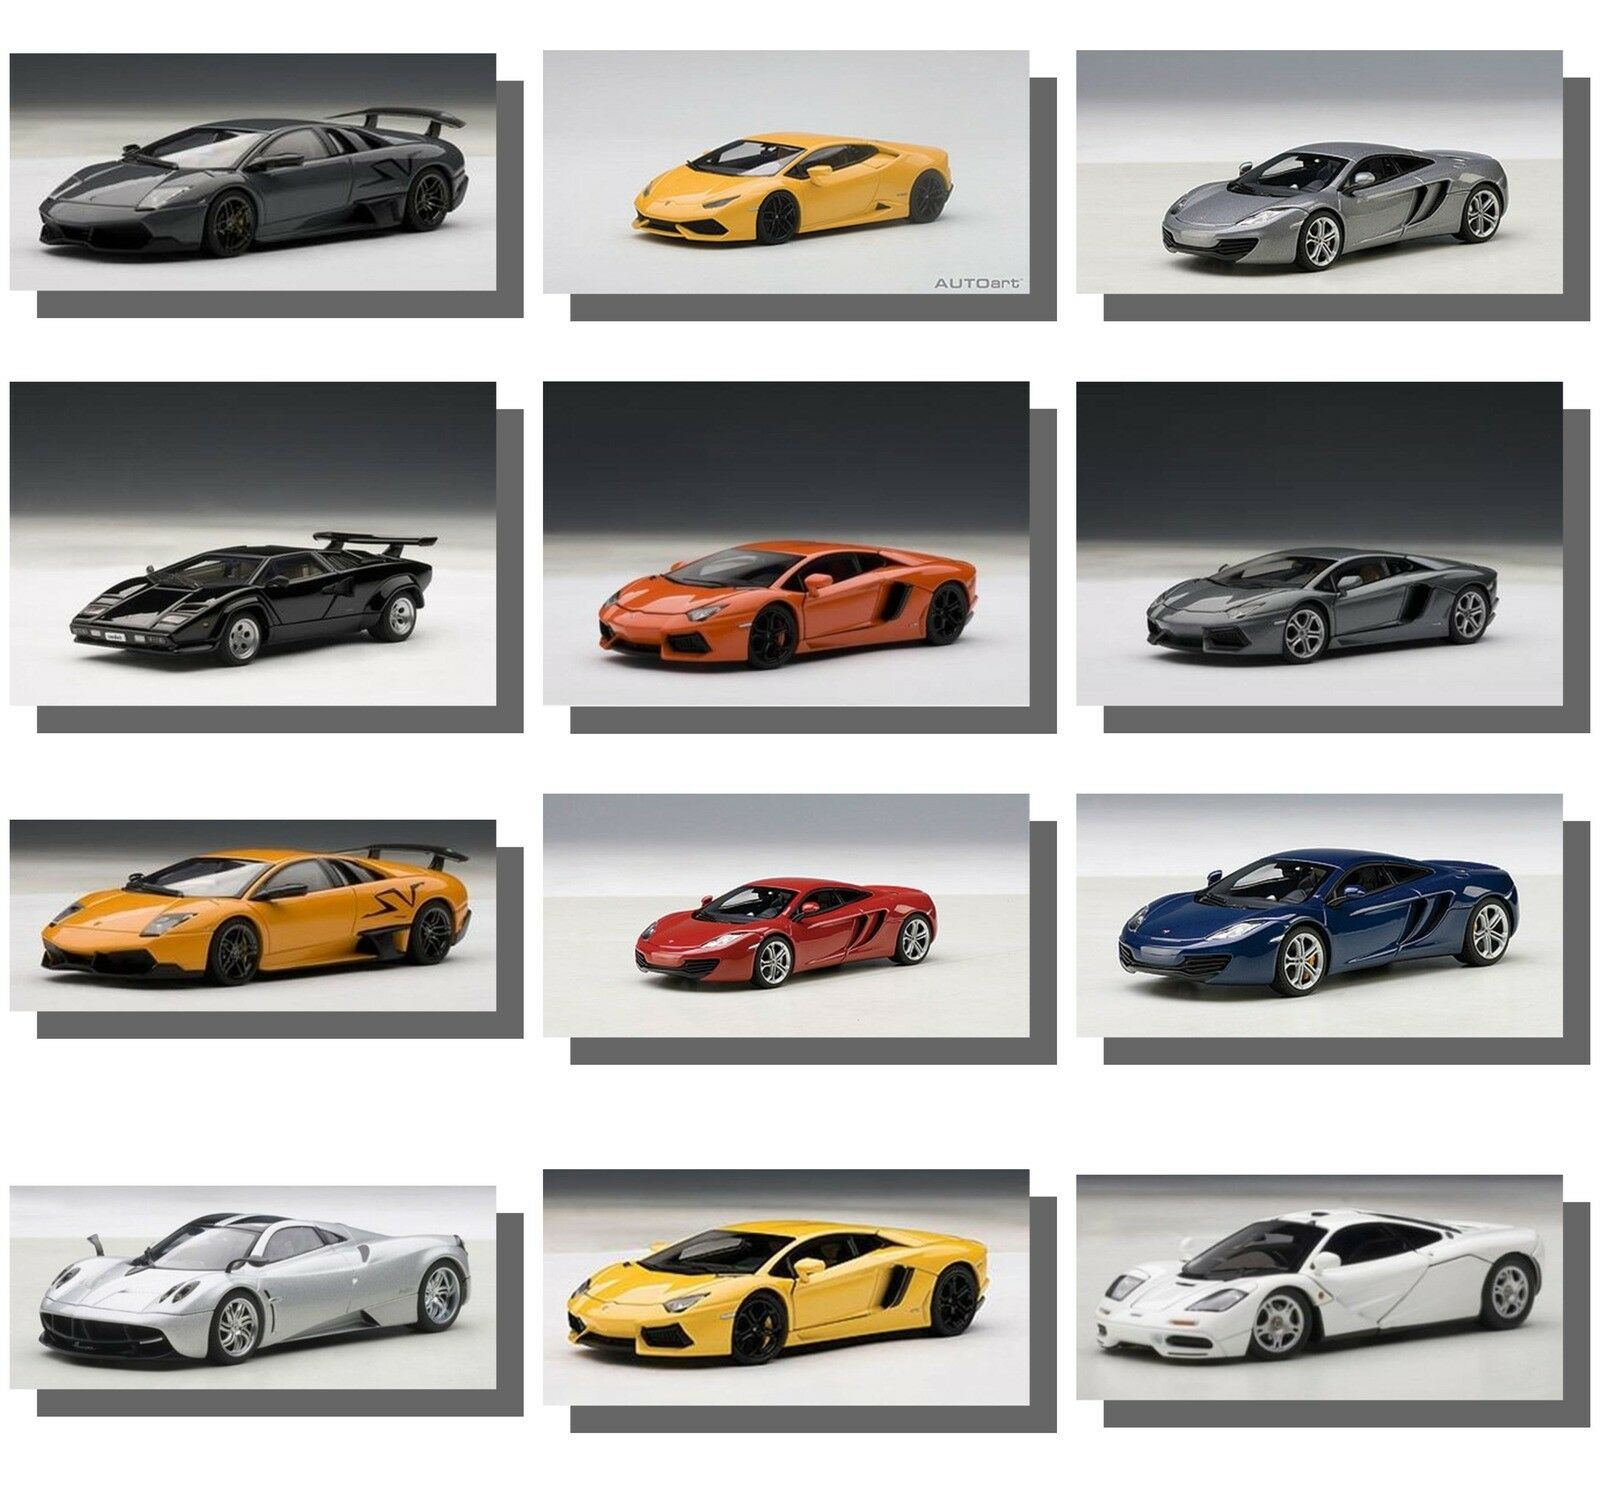 Autoart 1 18 Scale Cars, Extremely  High Quality.